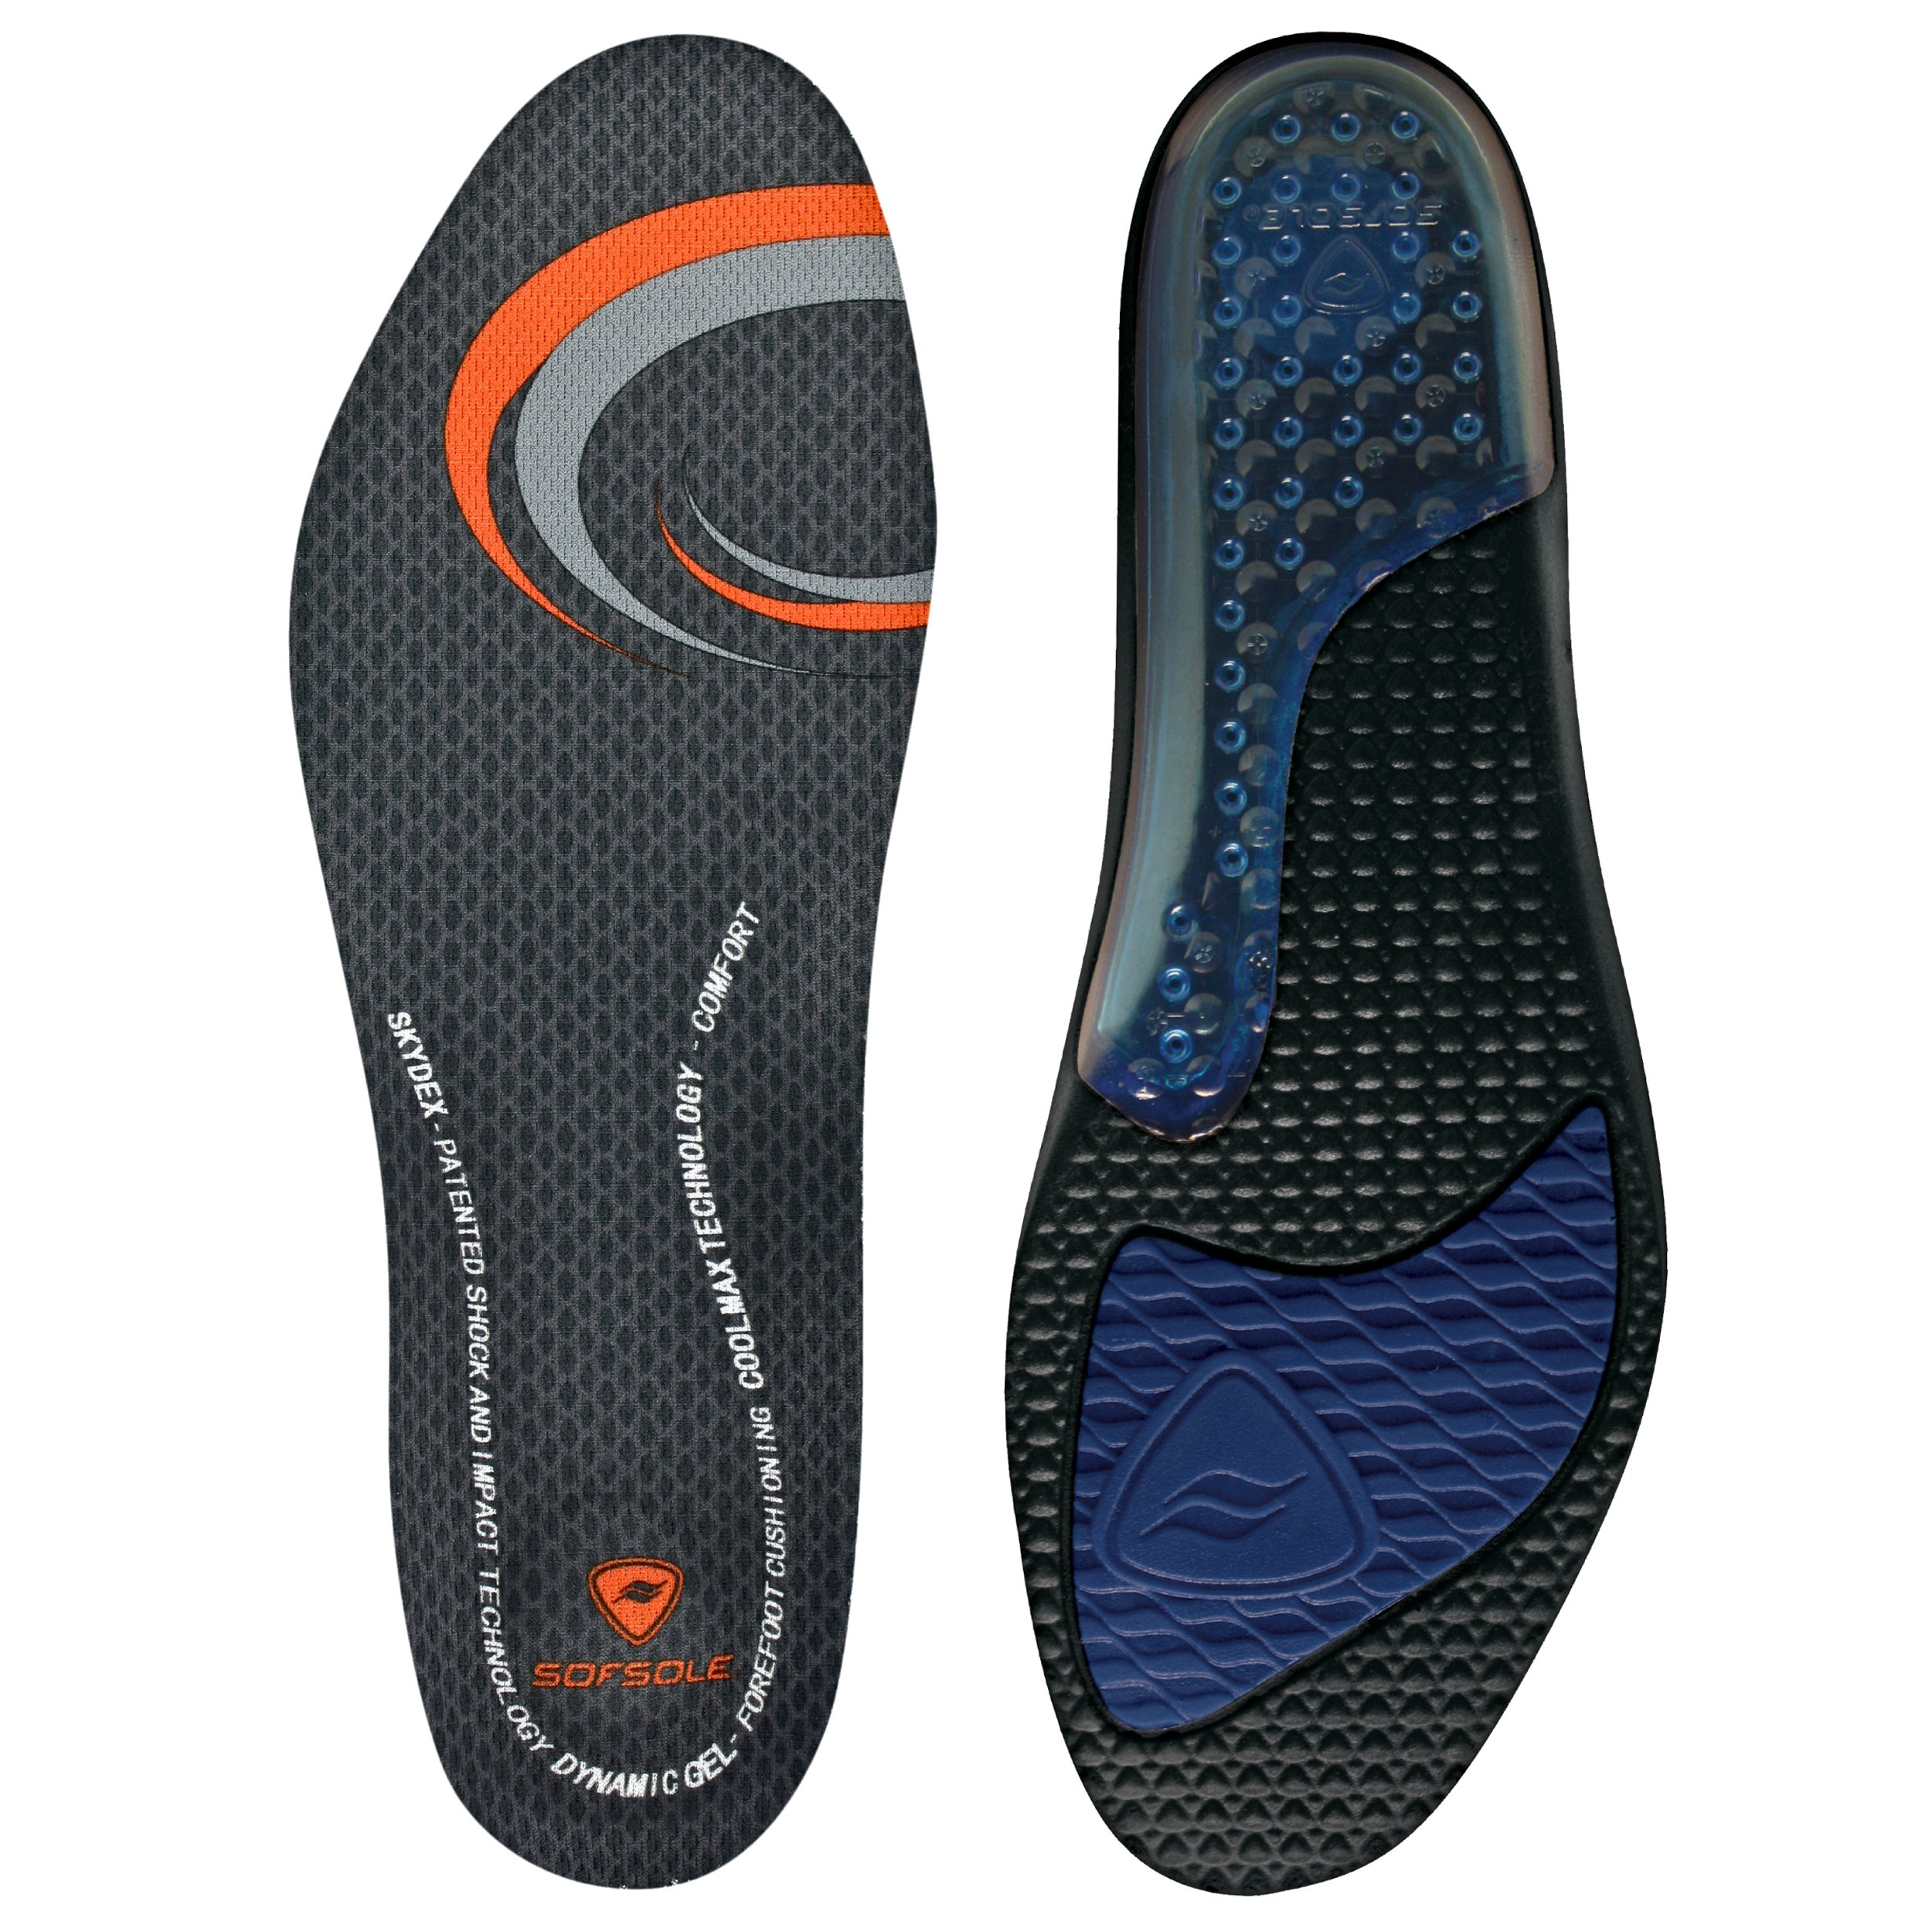 Sof Sole Performance Insole 11 12 5